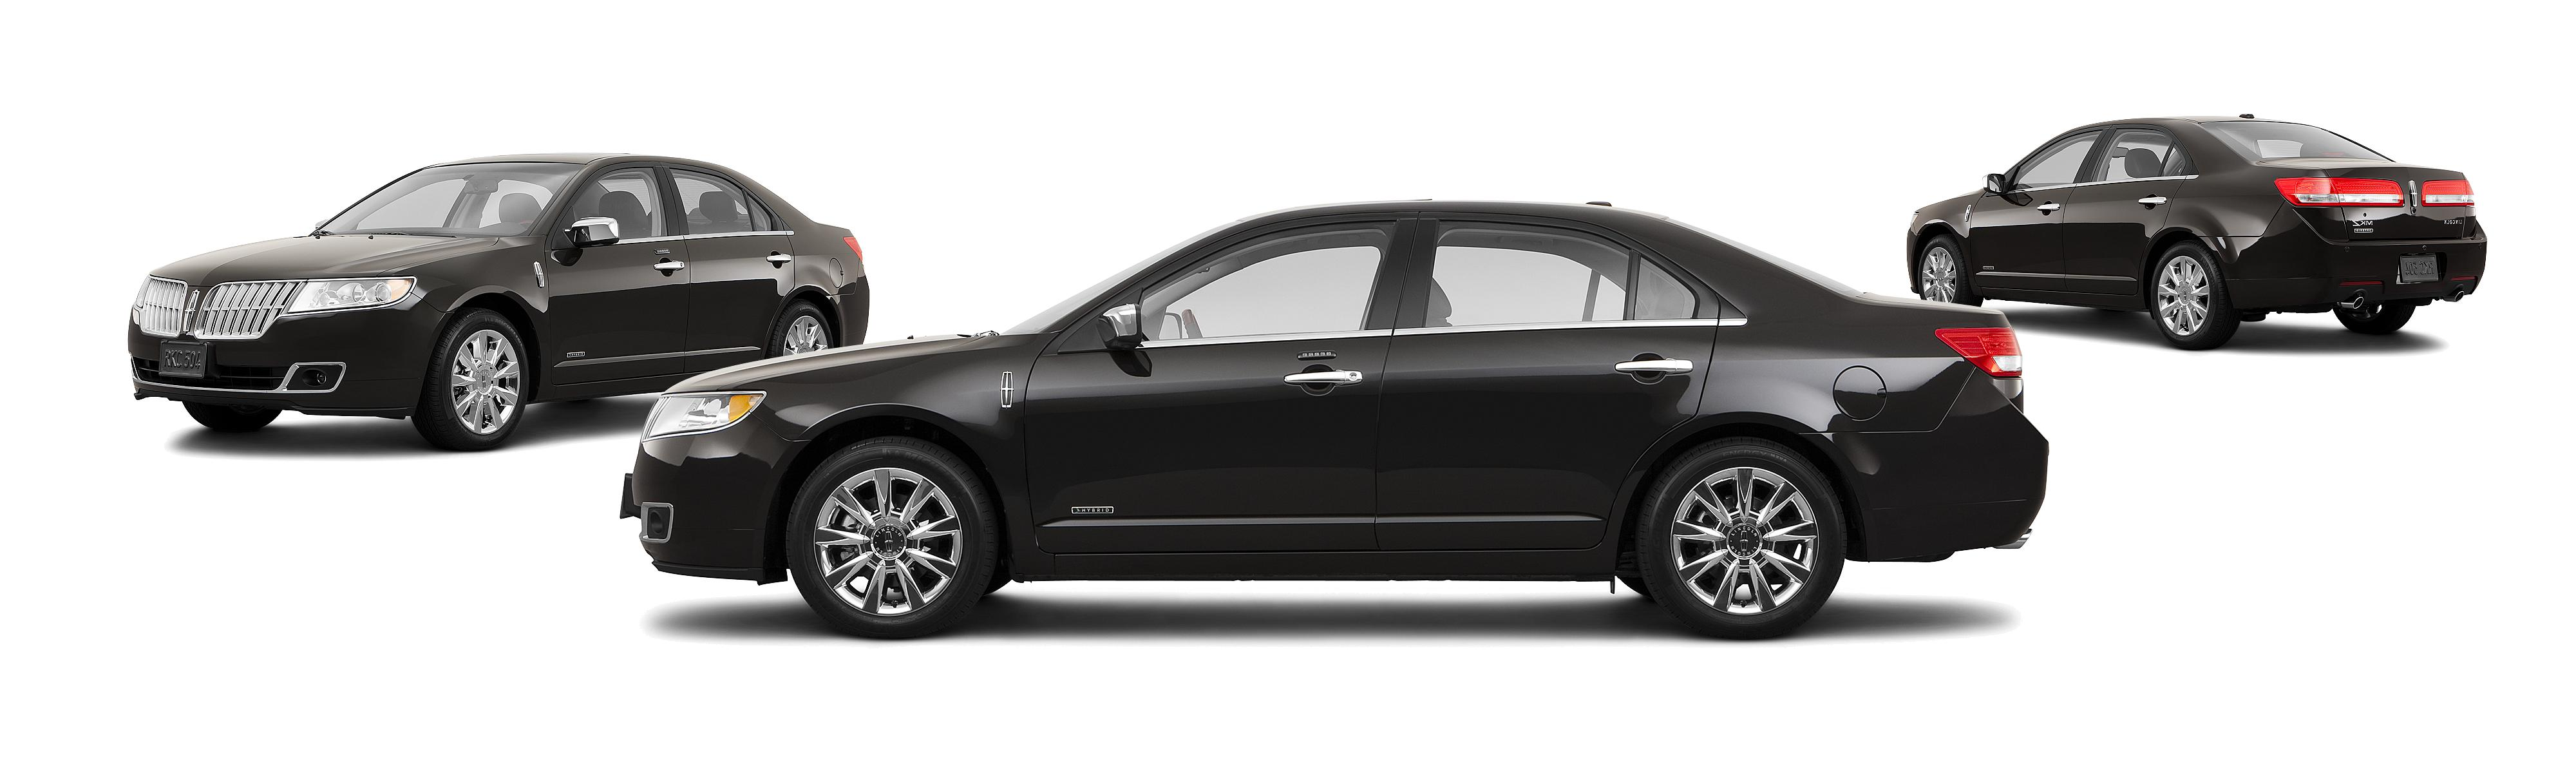 2011 Lincoln MKZ Hybrid 4dr Sedan - Research - GrooveCar